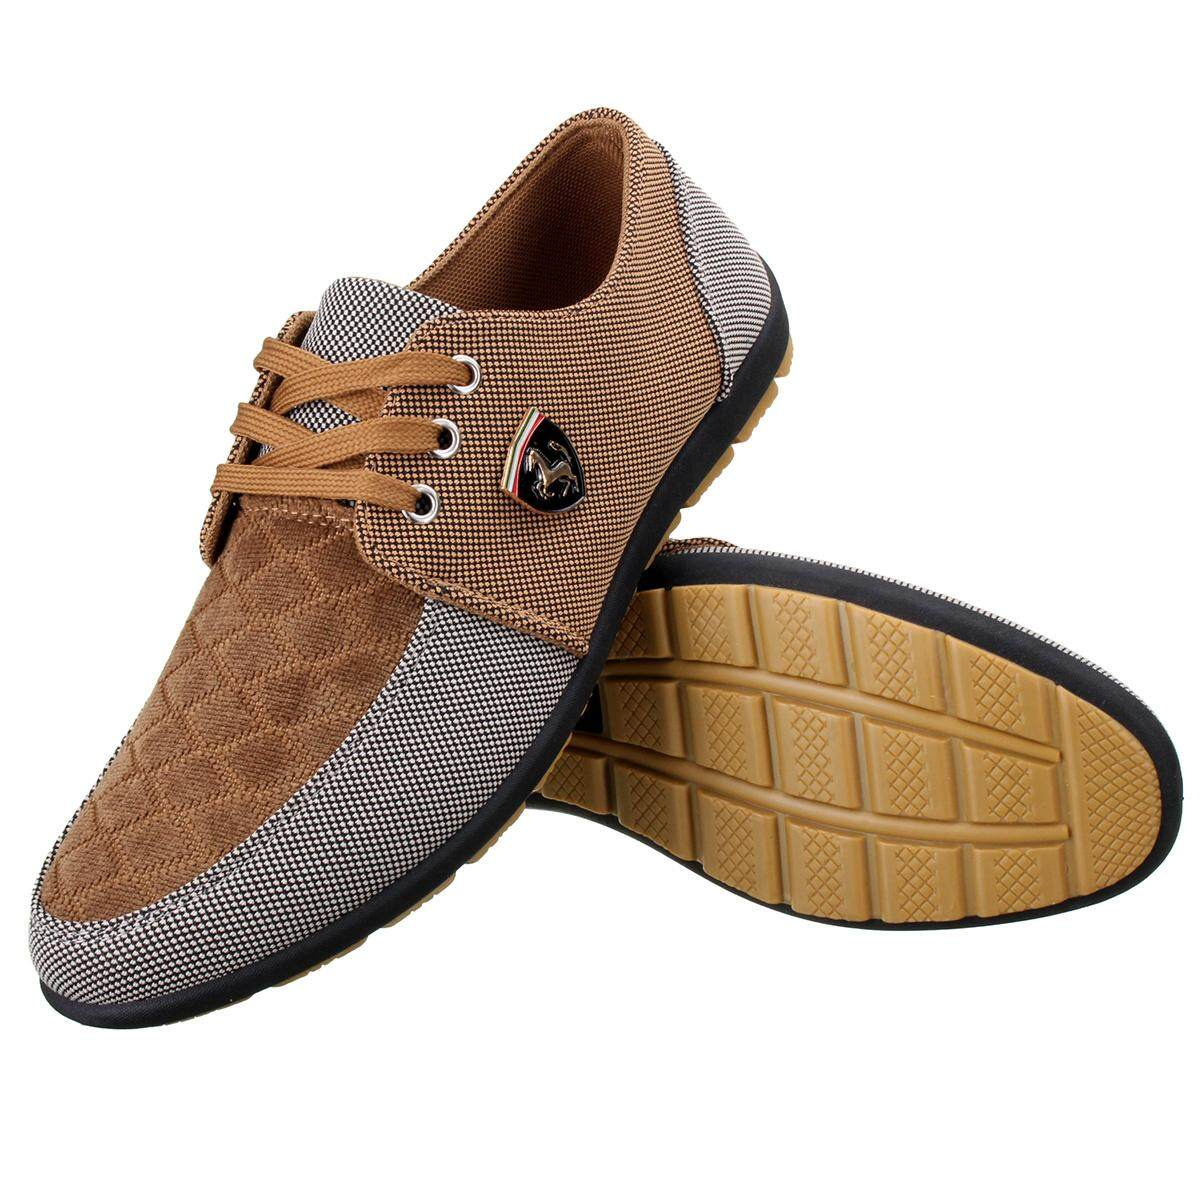 New Mens Suede Slip On Driving Moccasin Loafer Breathable Casual Shoes brown  - abc00d9ea4